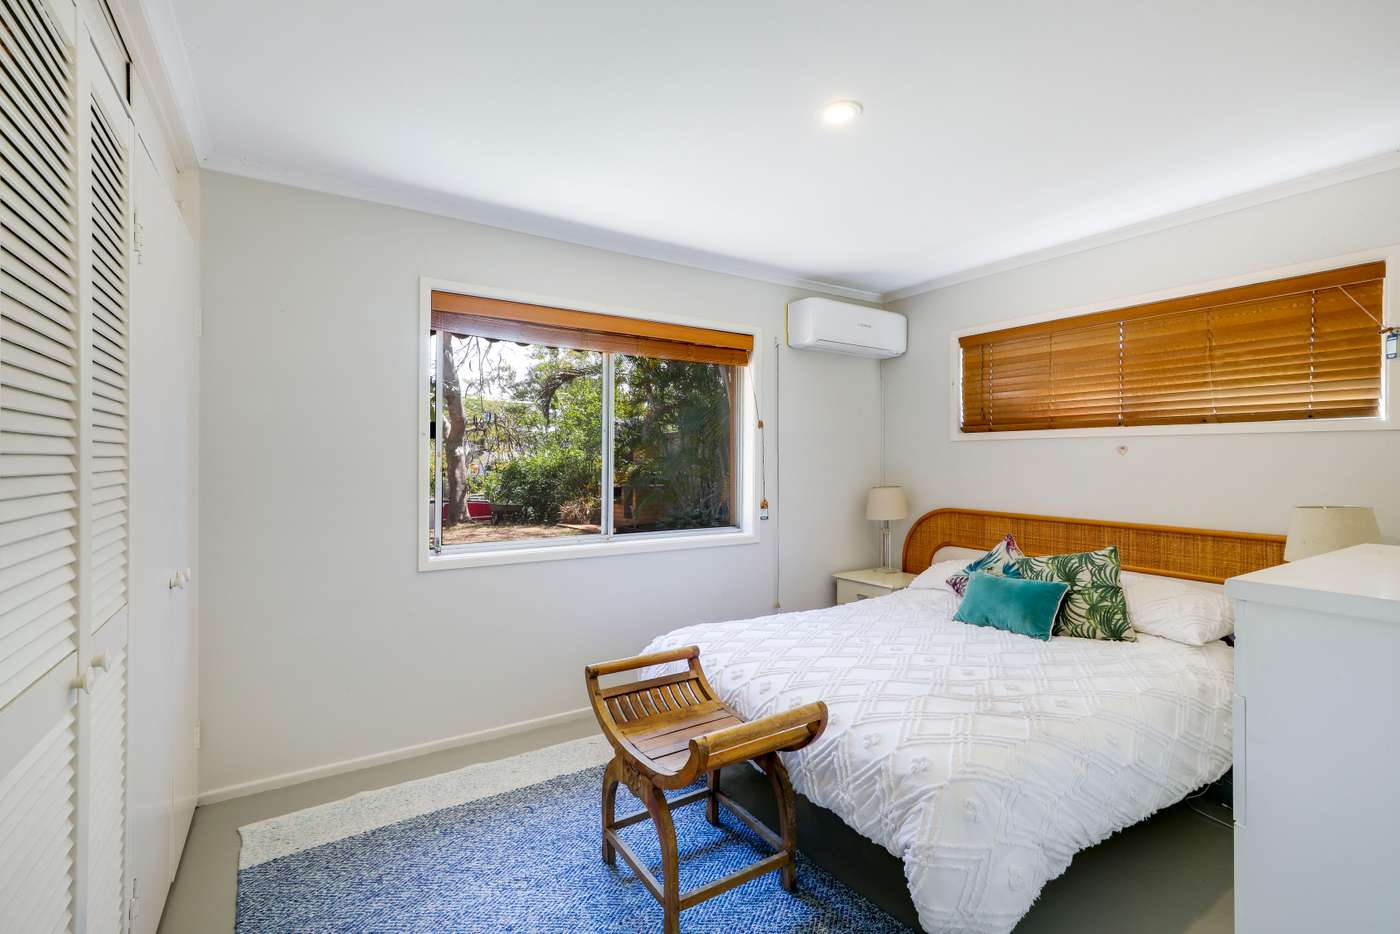 Seventh view of Homely house listing, 1 Crest View Key, Broadbeach Waters QLD 4218